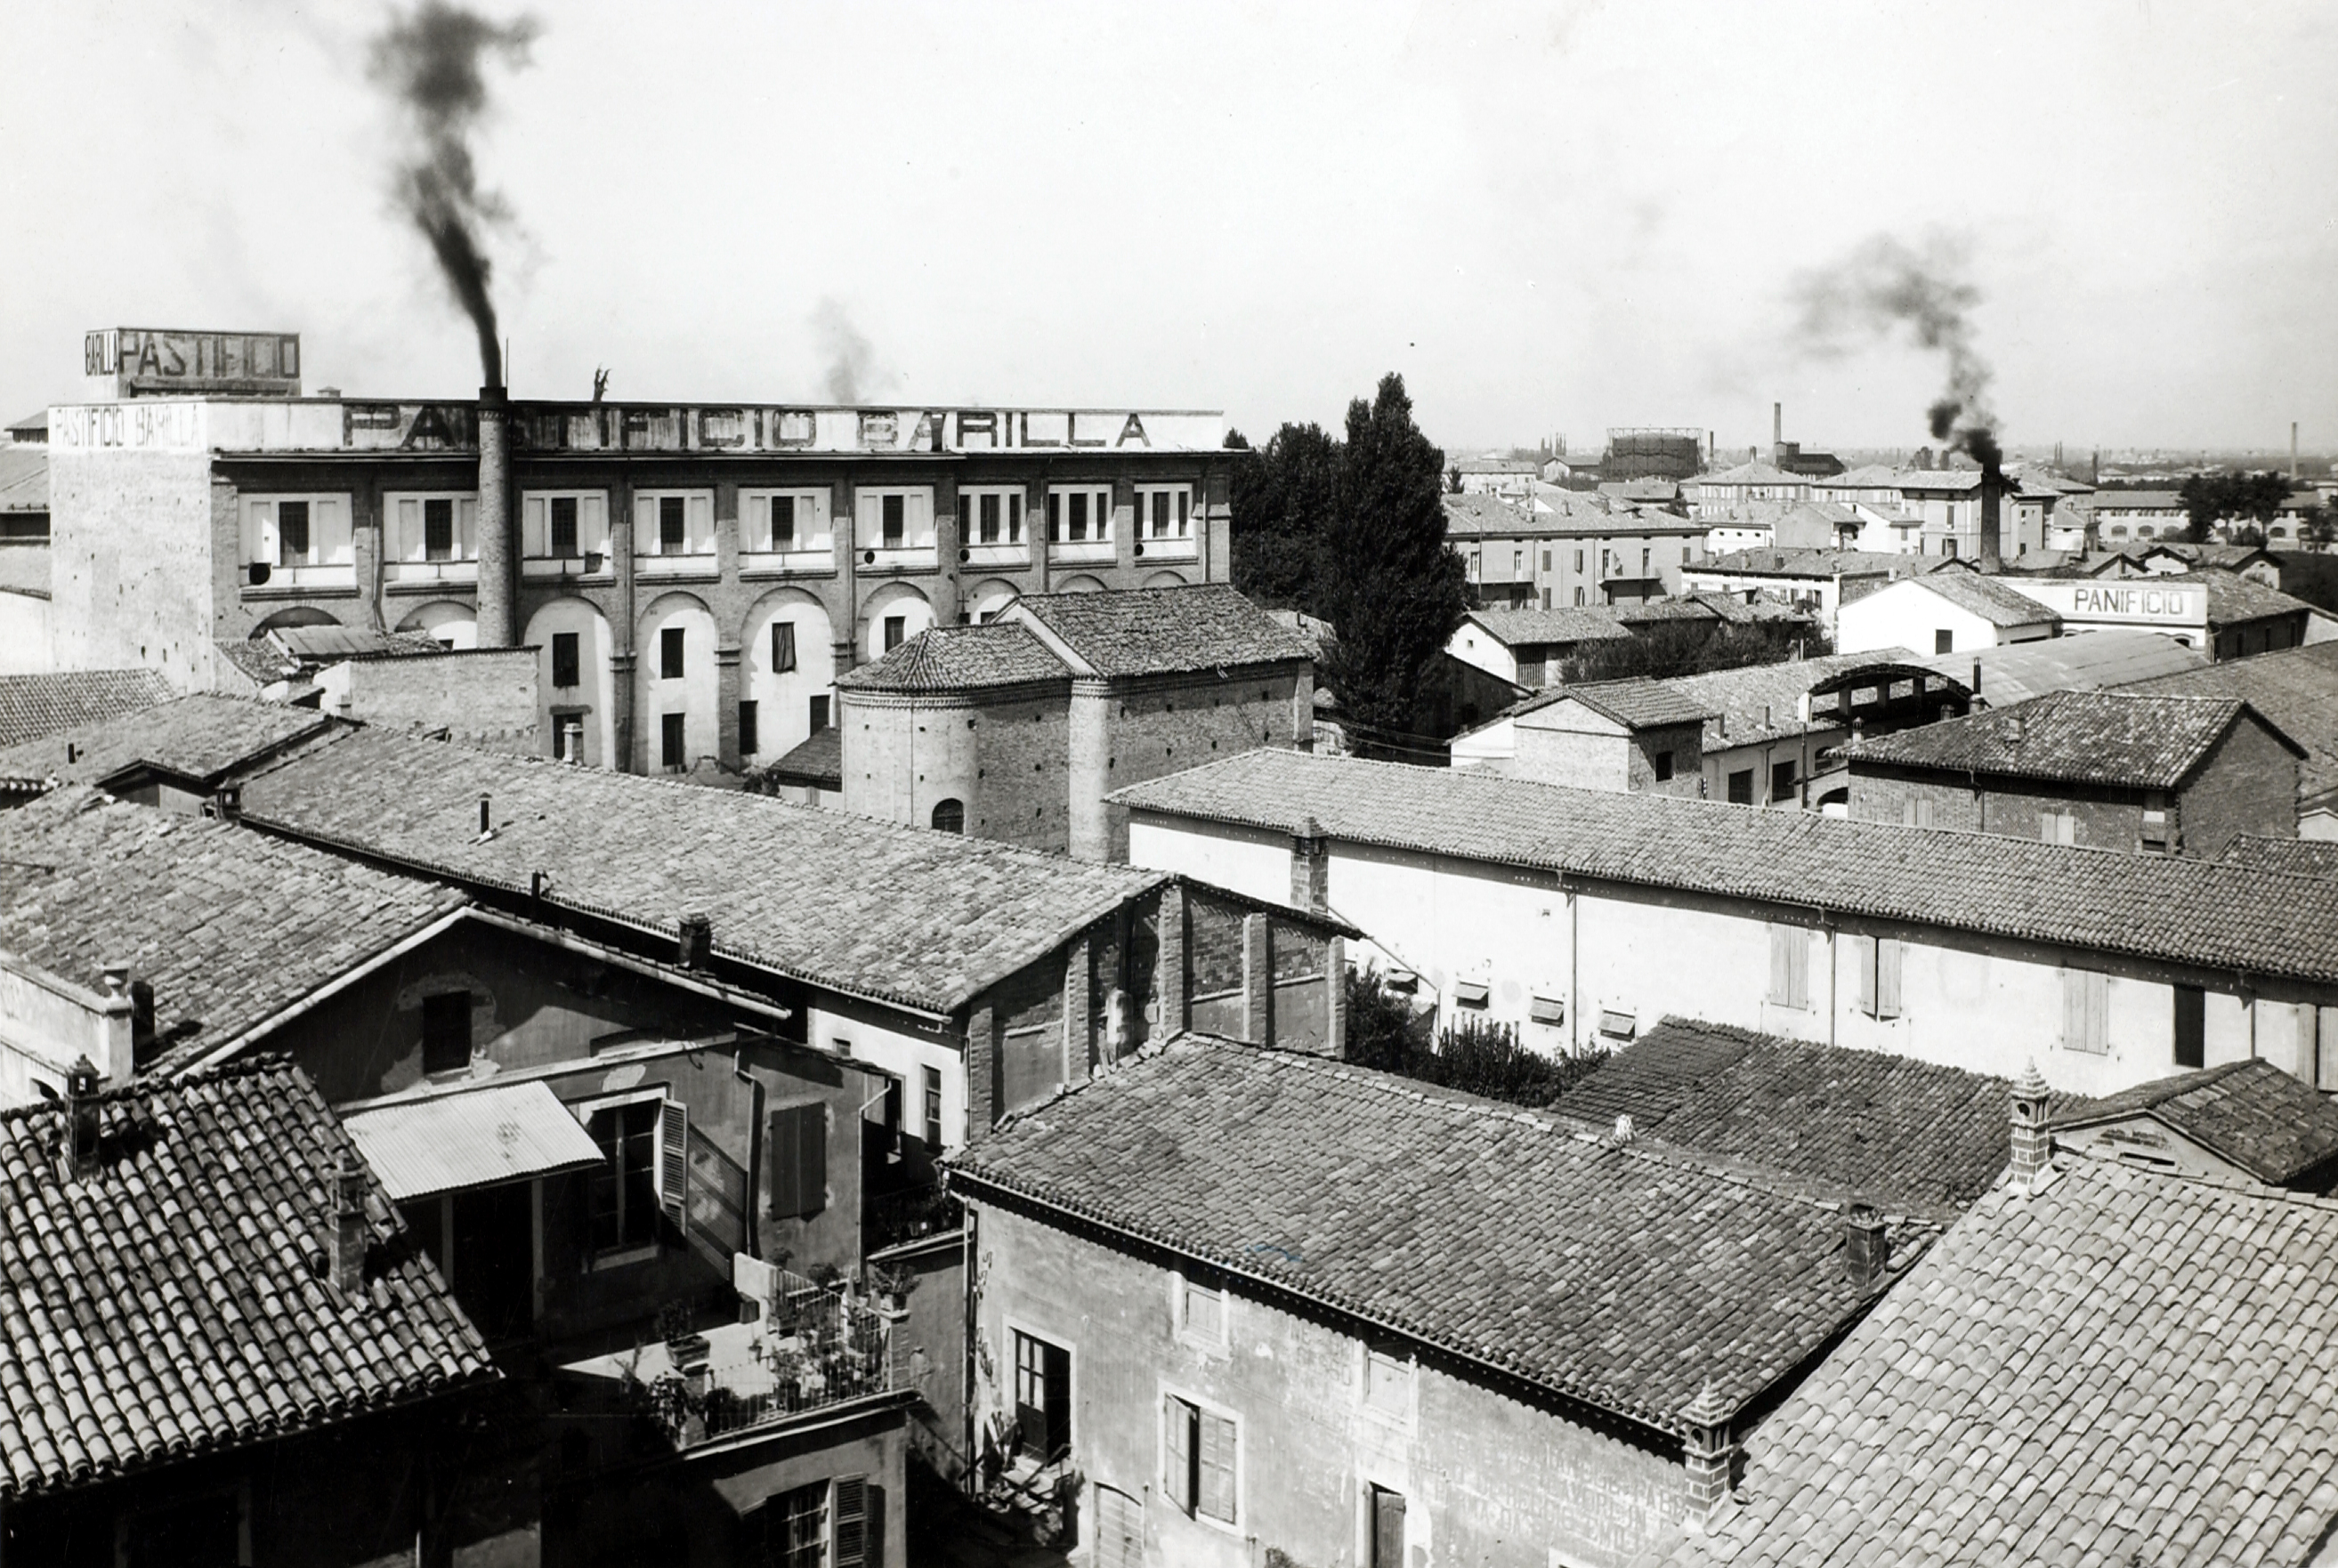 The extension of Barilla plant in a photo by Luigi Vaghi of 1923 [ASB A 28].